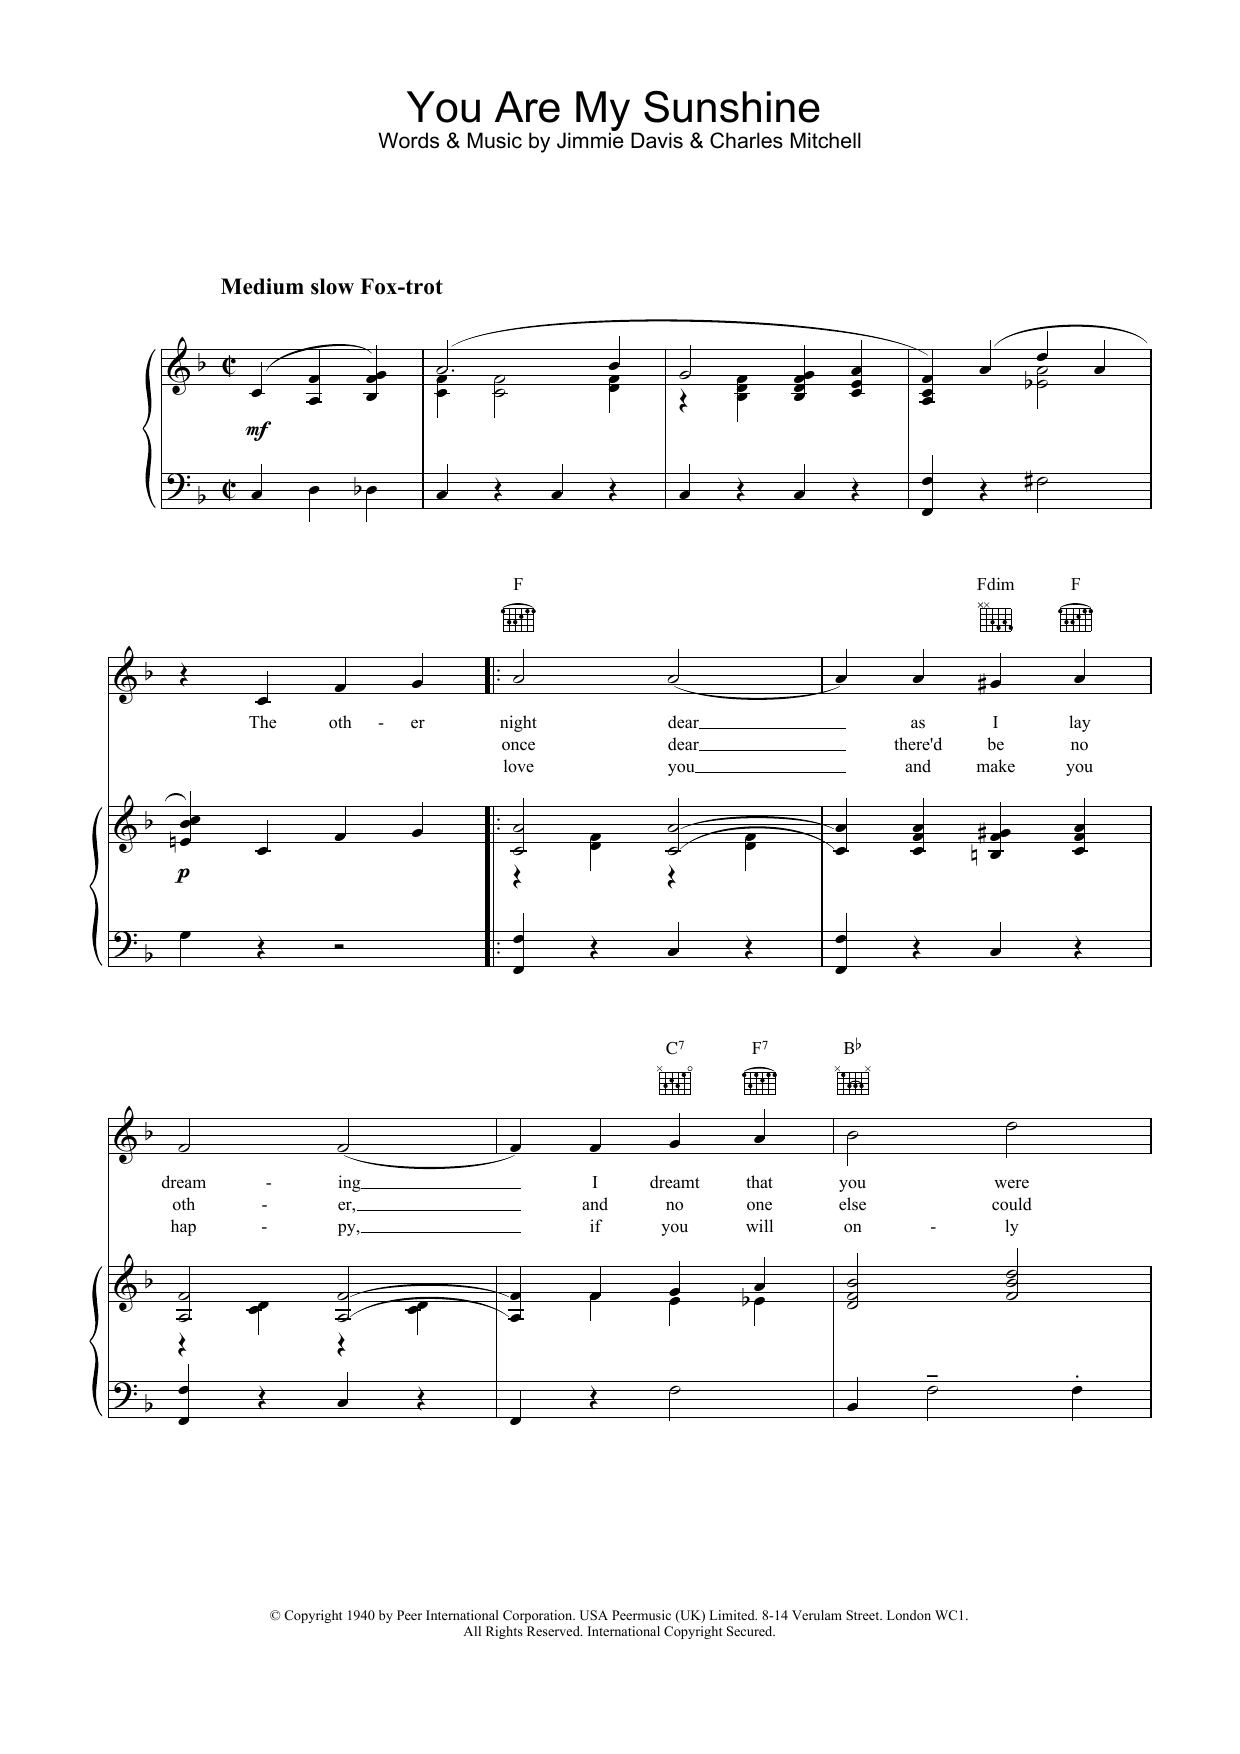 You Are My Sunshine | Sheet Music Direct